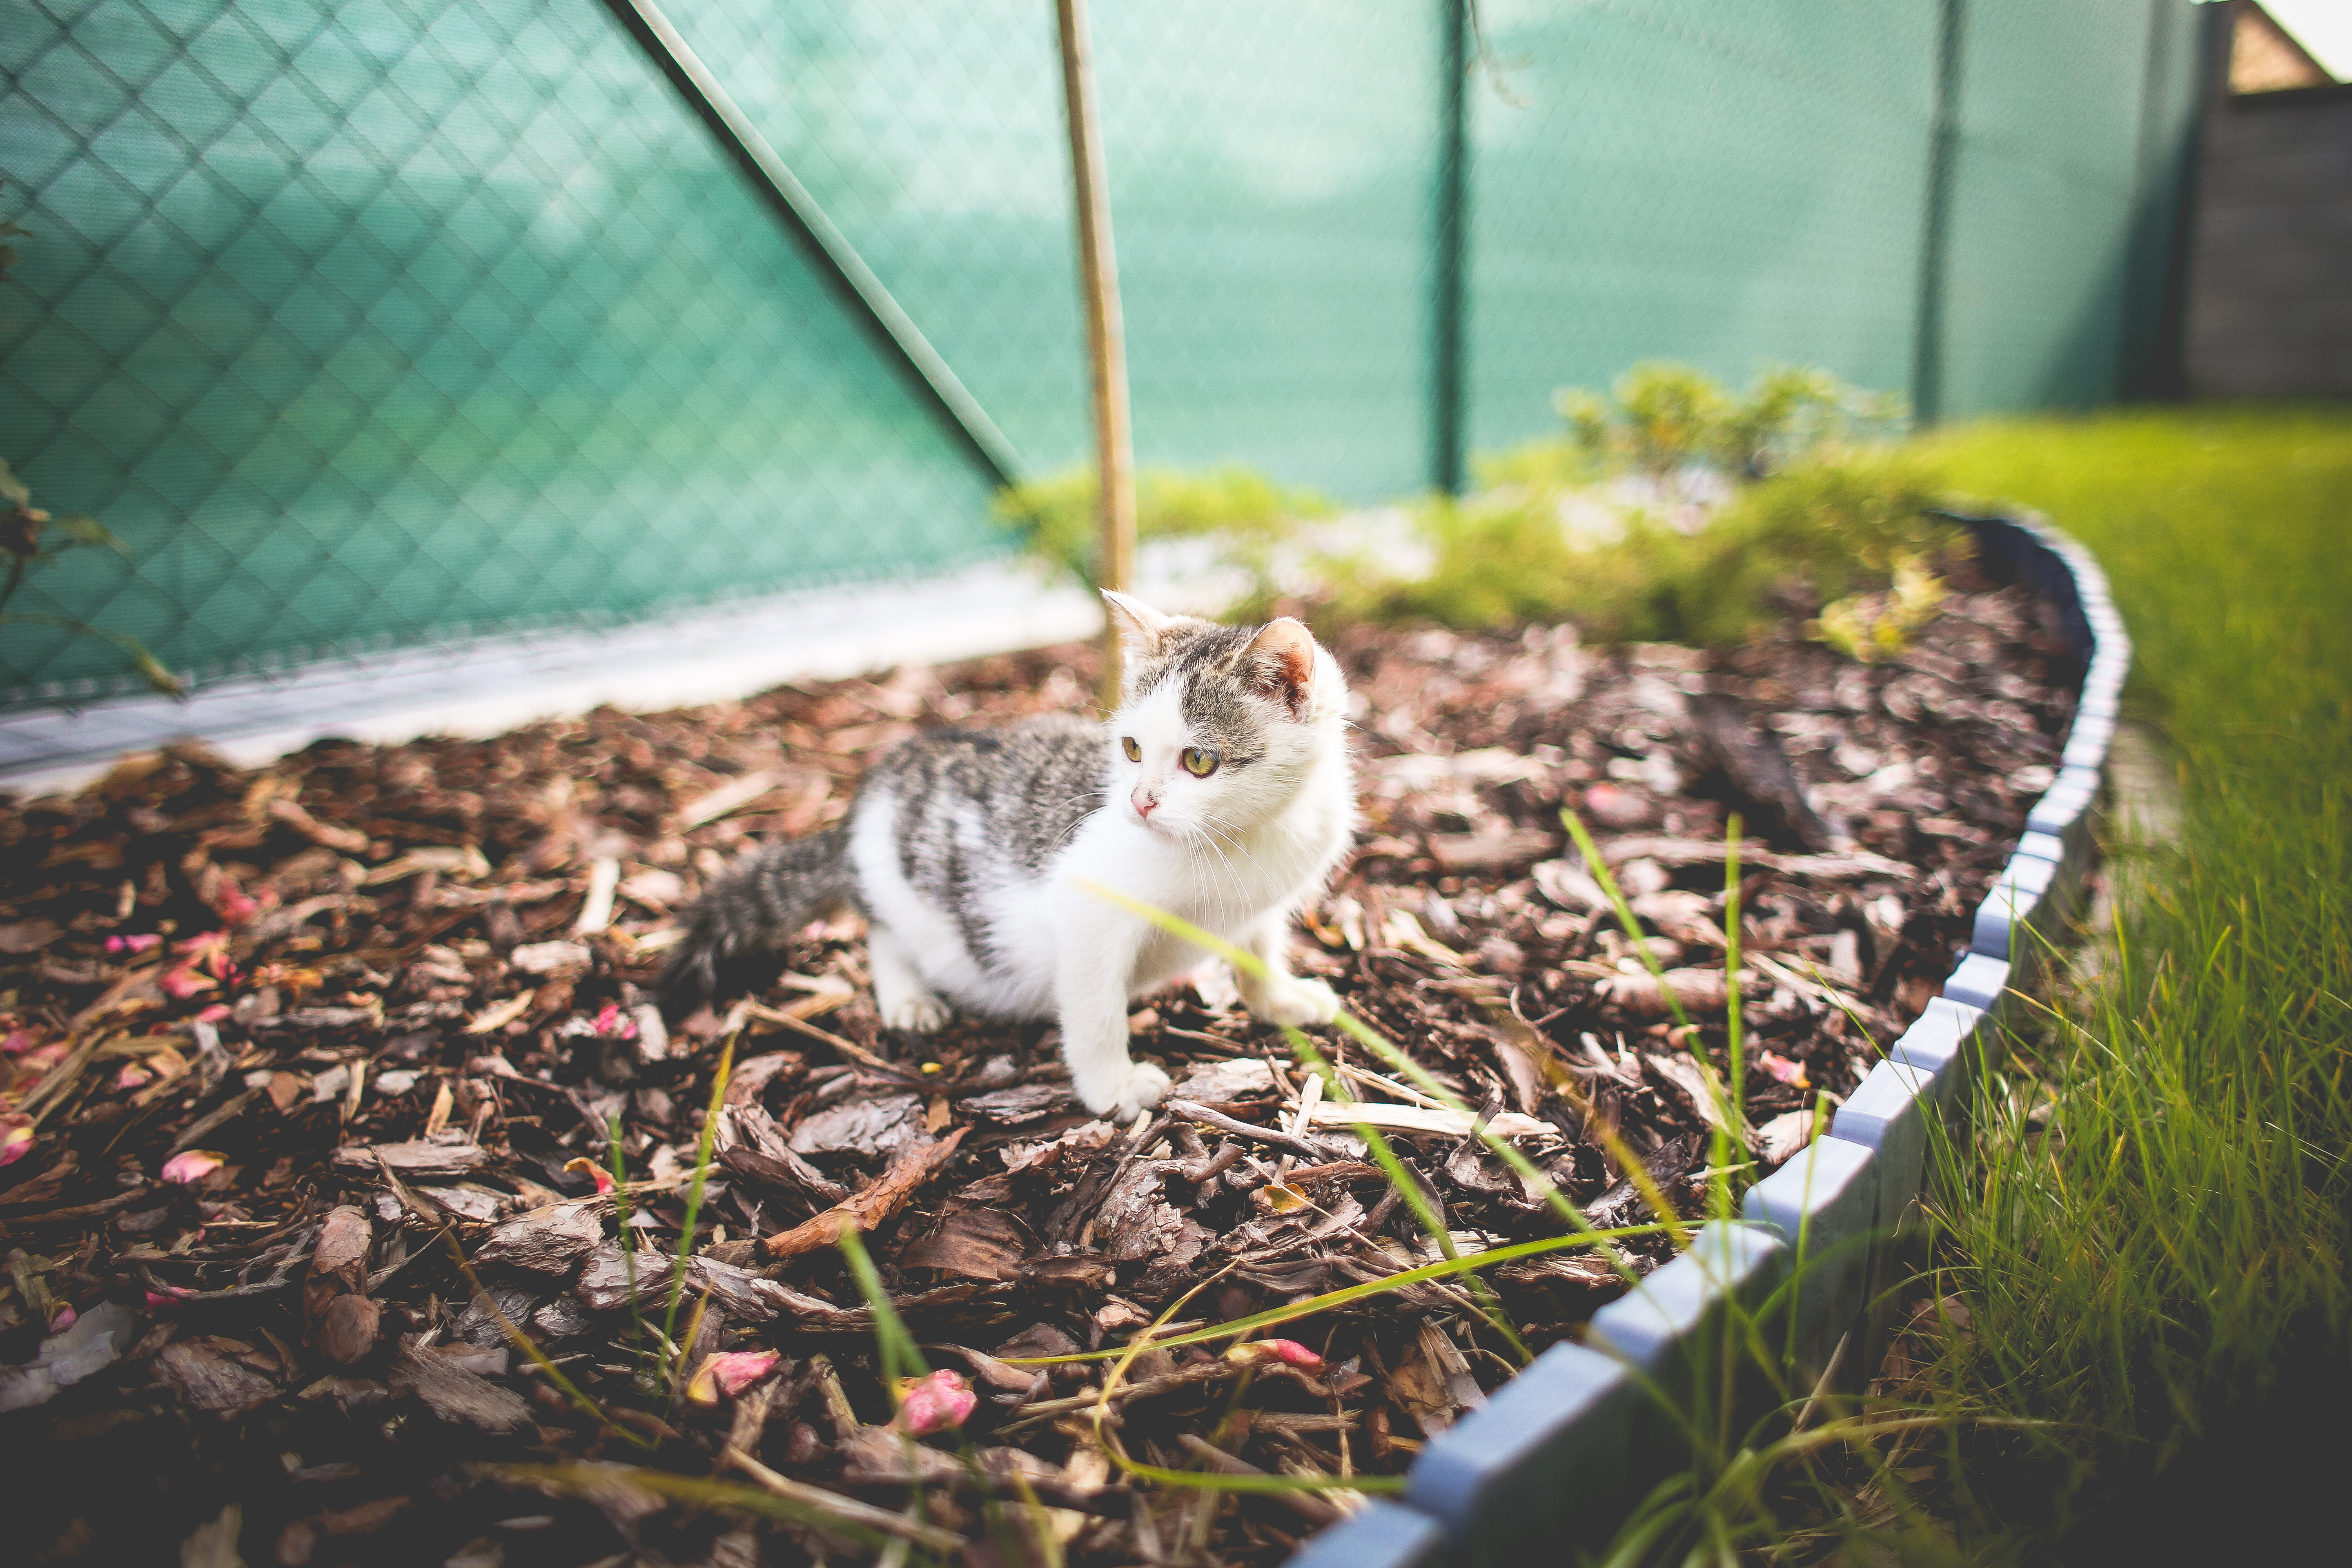 Download Monty The Cat in the Garden FREE Stock Photo